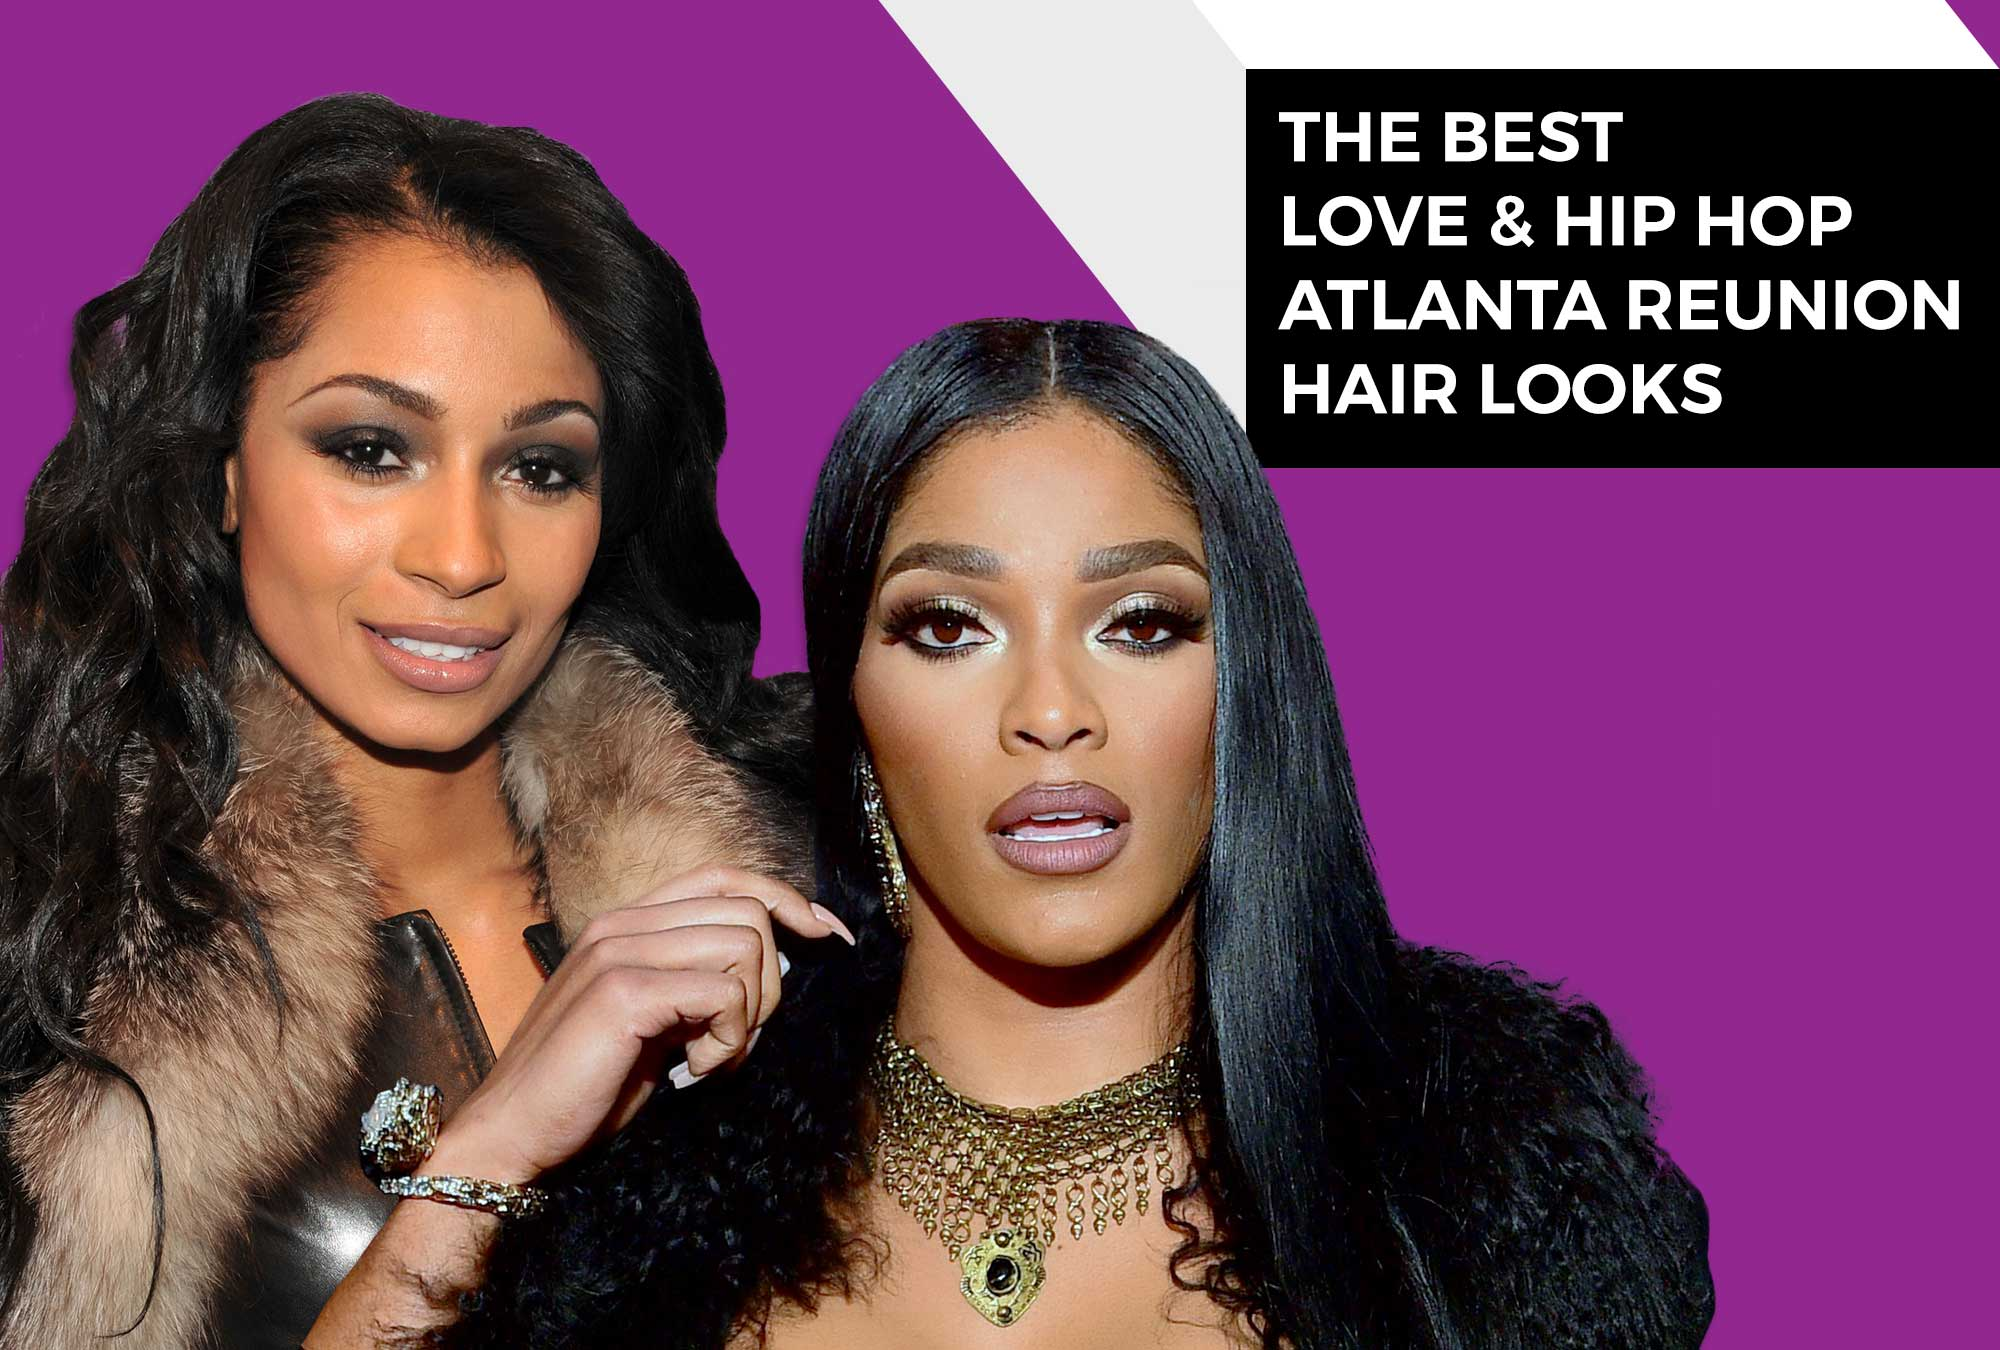 They Came To Slay: The Best Love & Hip Hop Atlanta Reunion Hairstyles